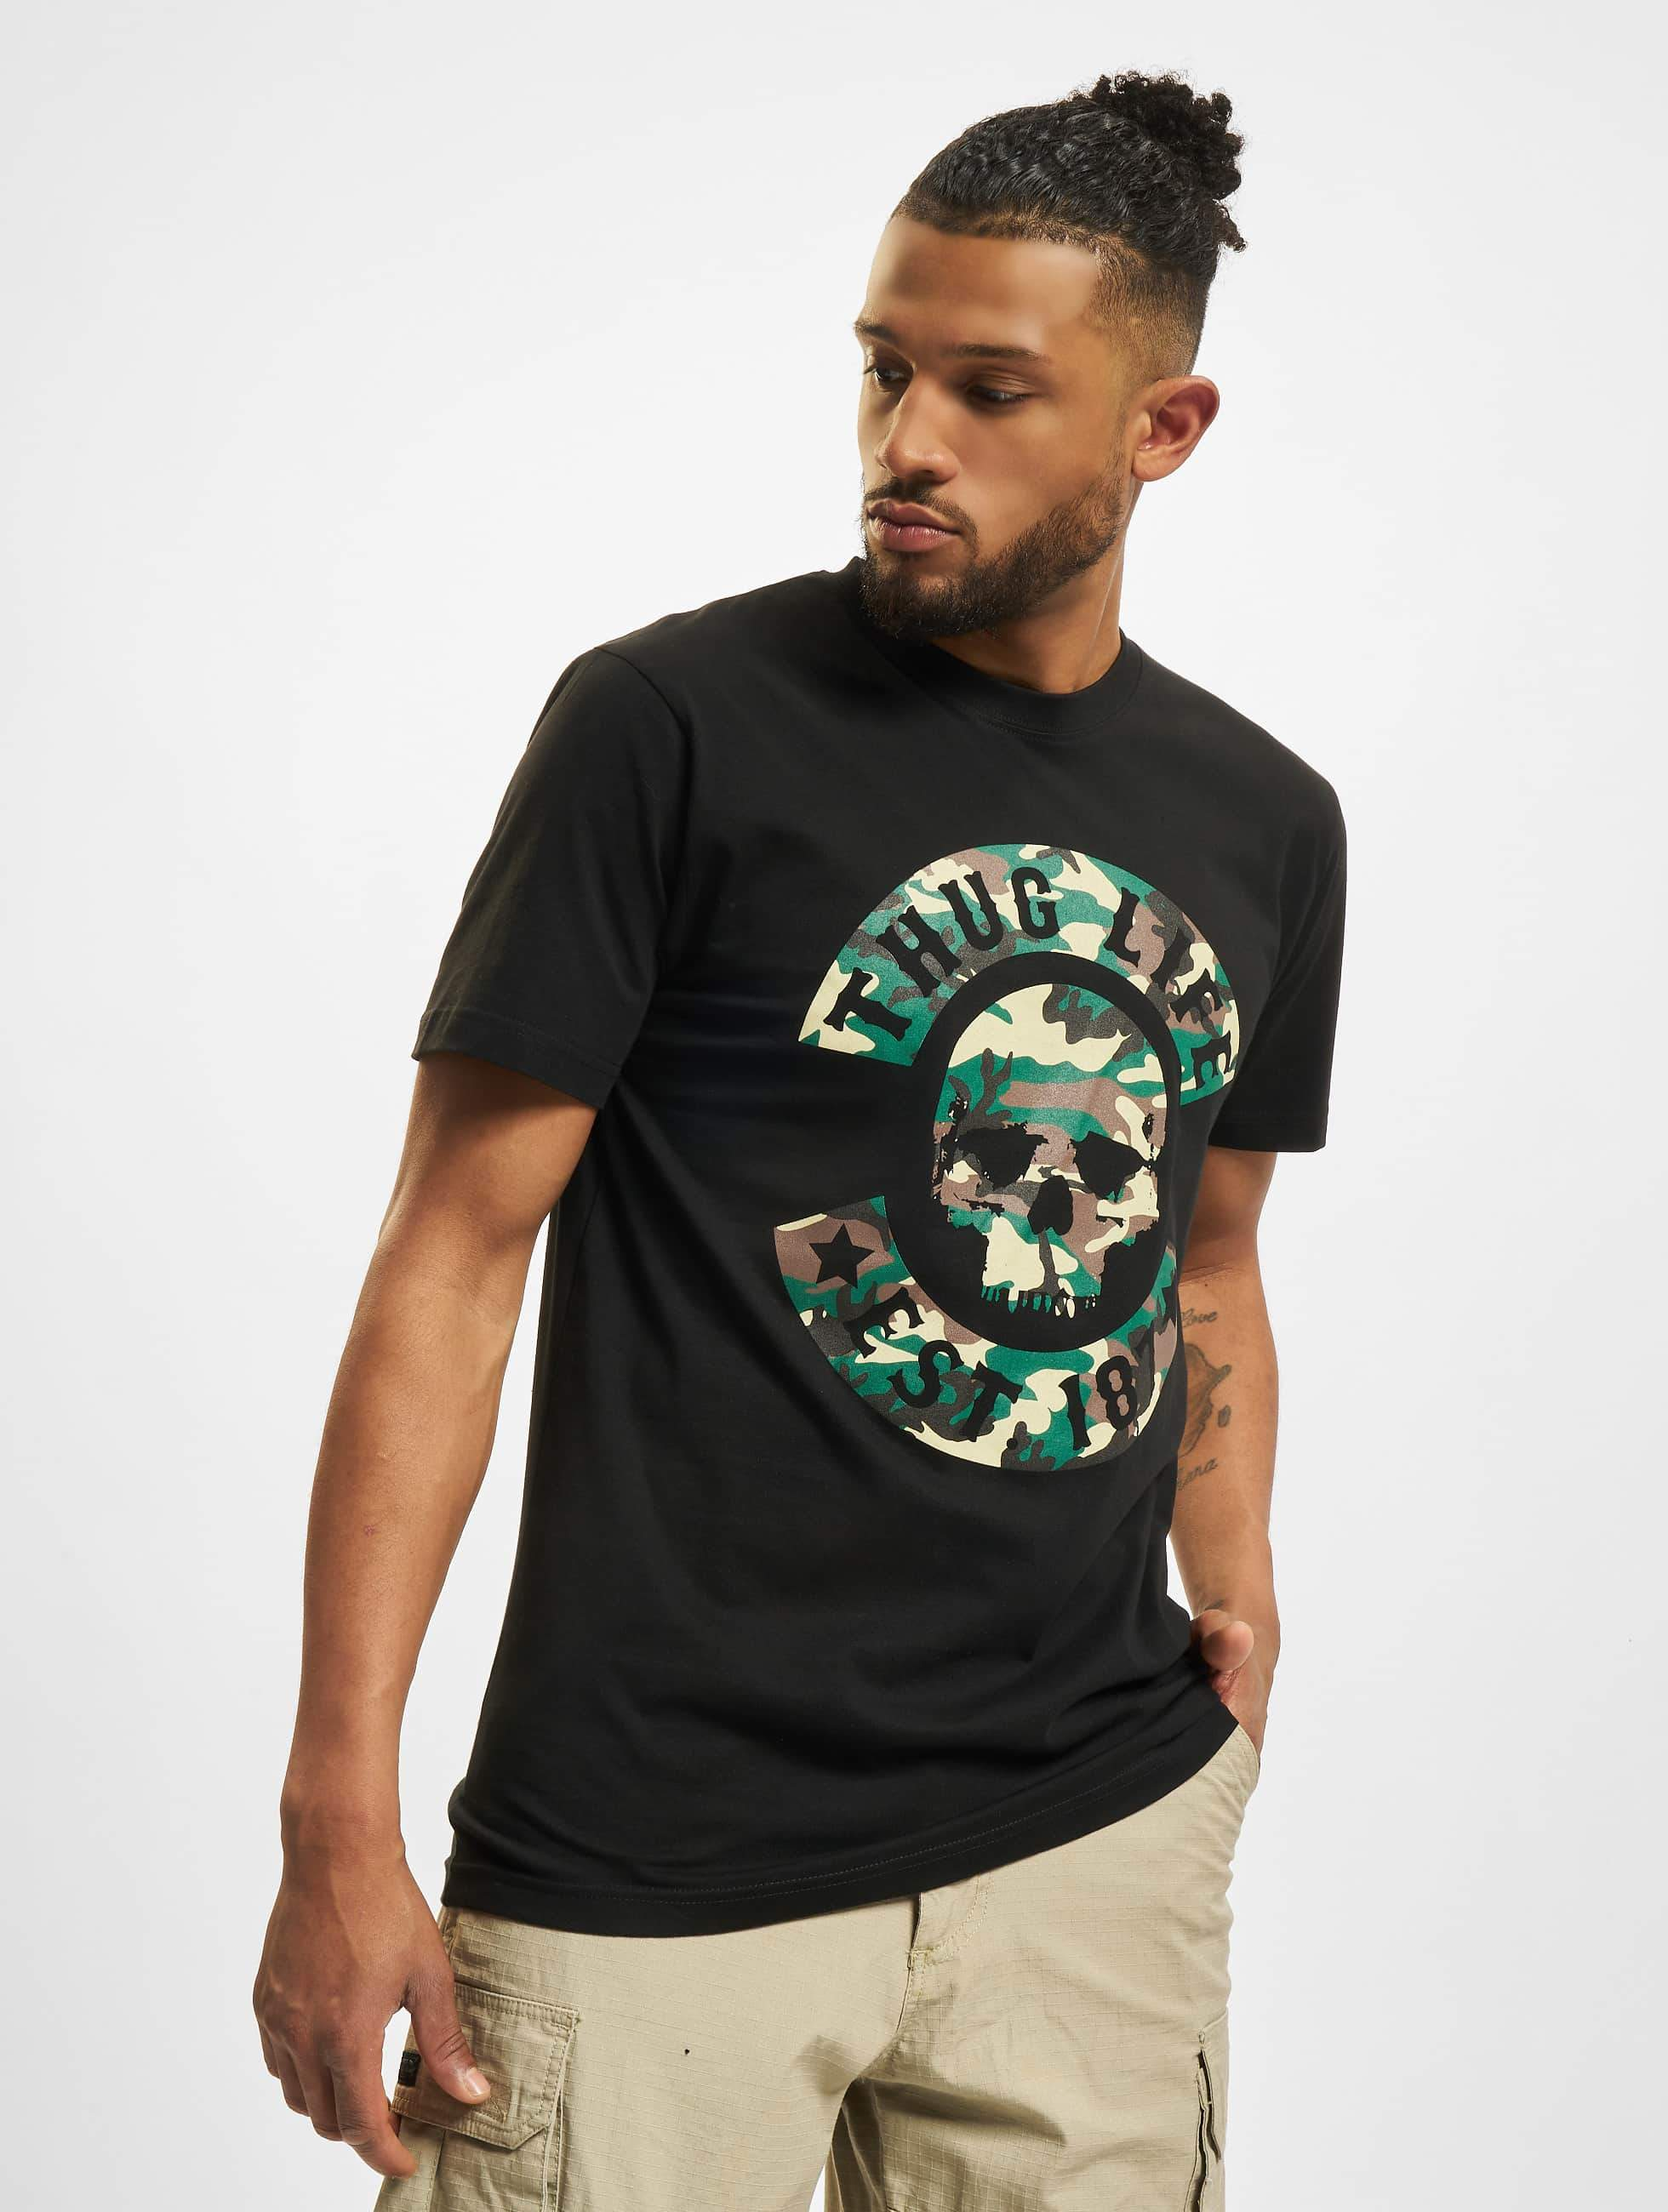 Thug Life / T-Shirt B. Camo in black M